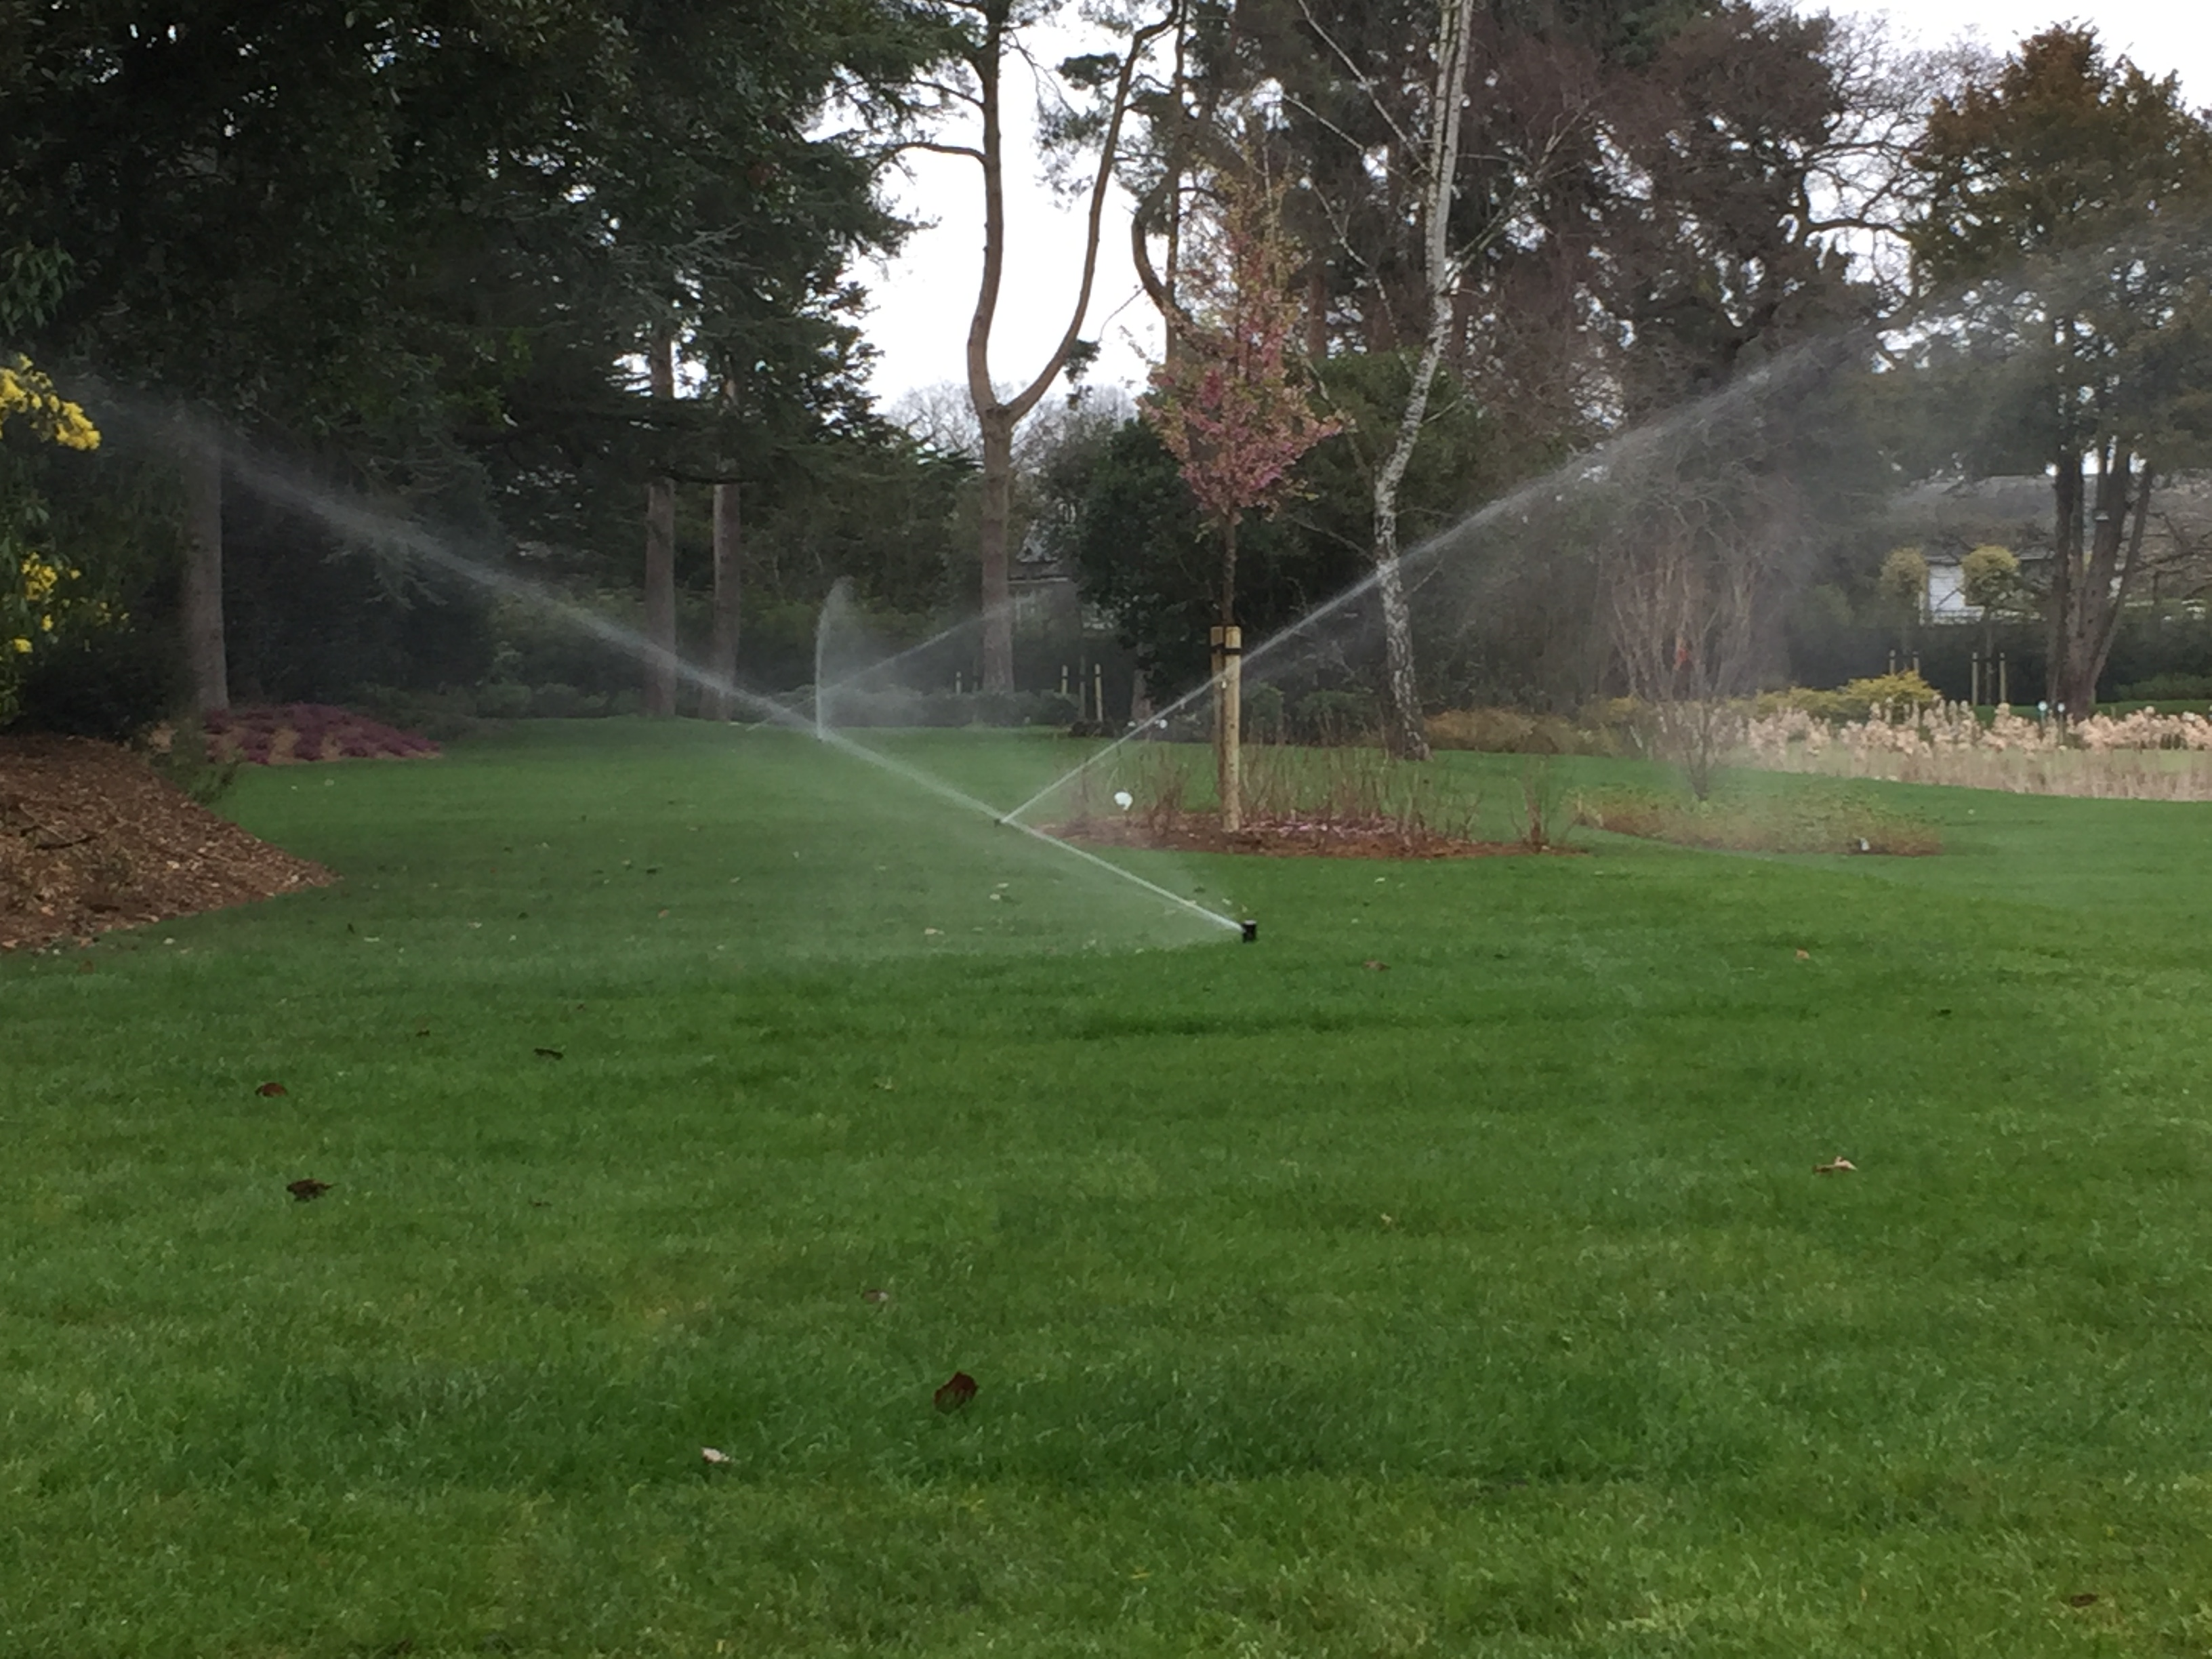 Lawn sprinkler installations by LDC for Surrey and the South East